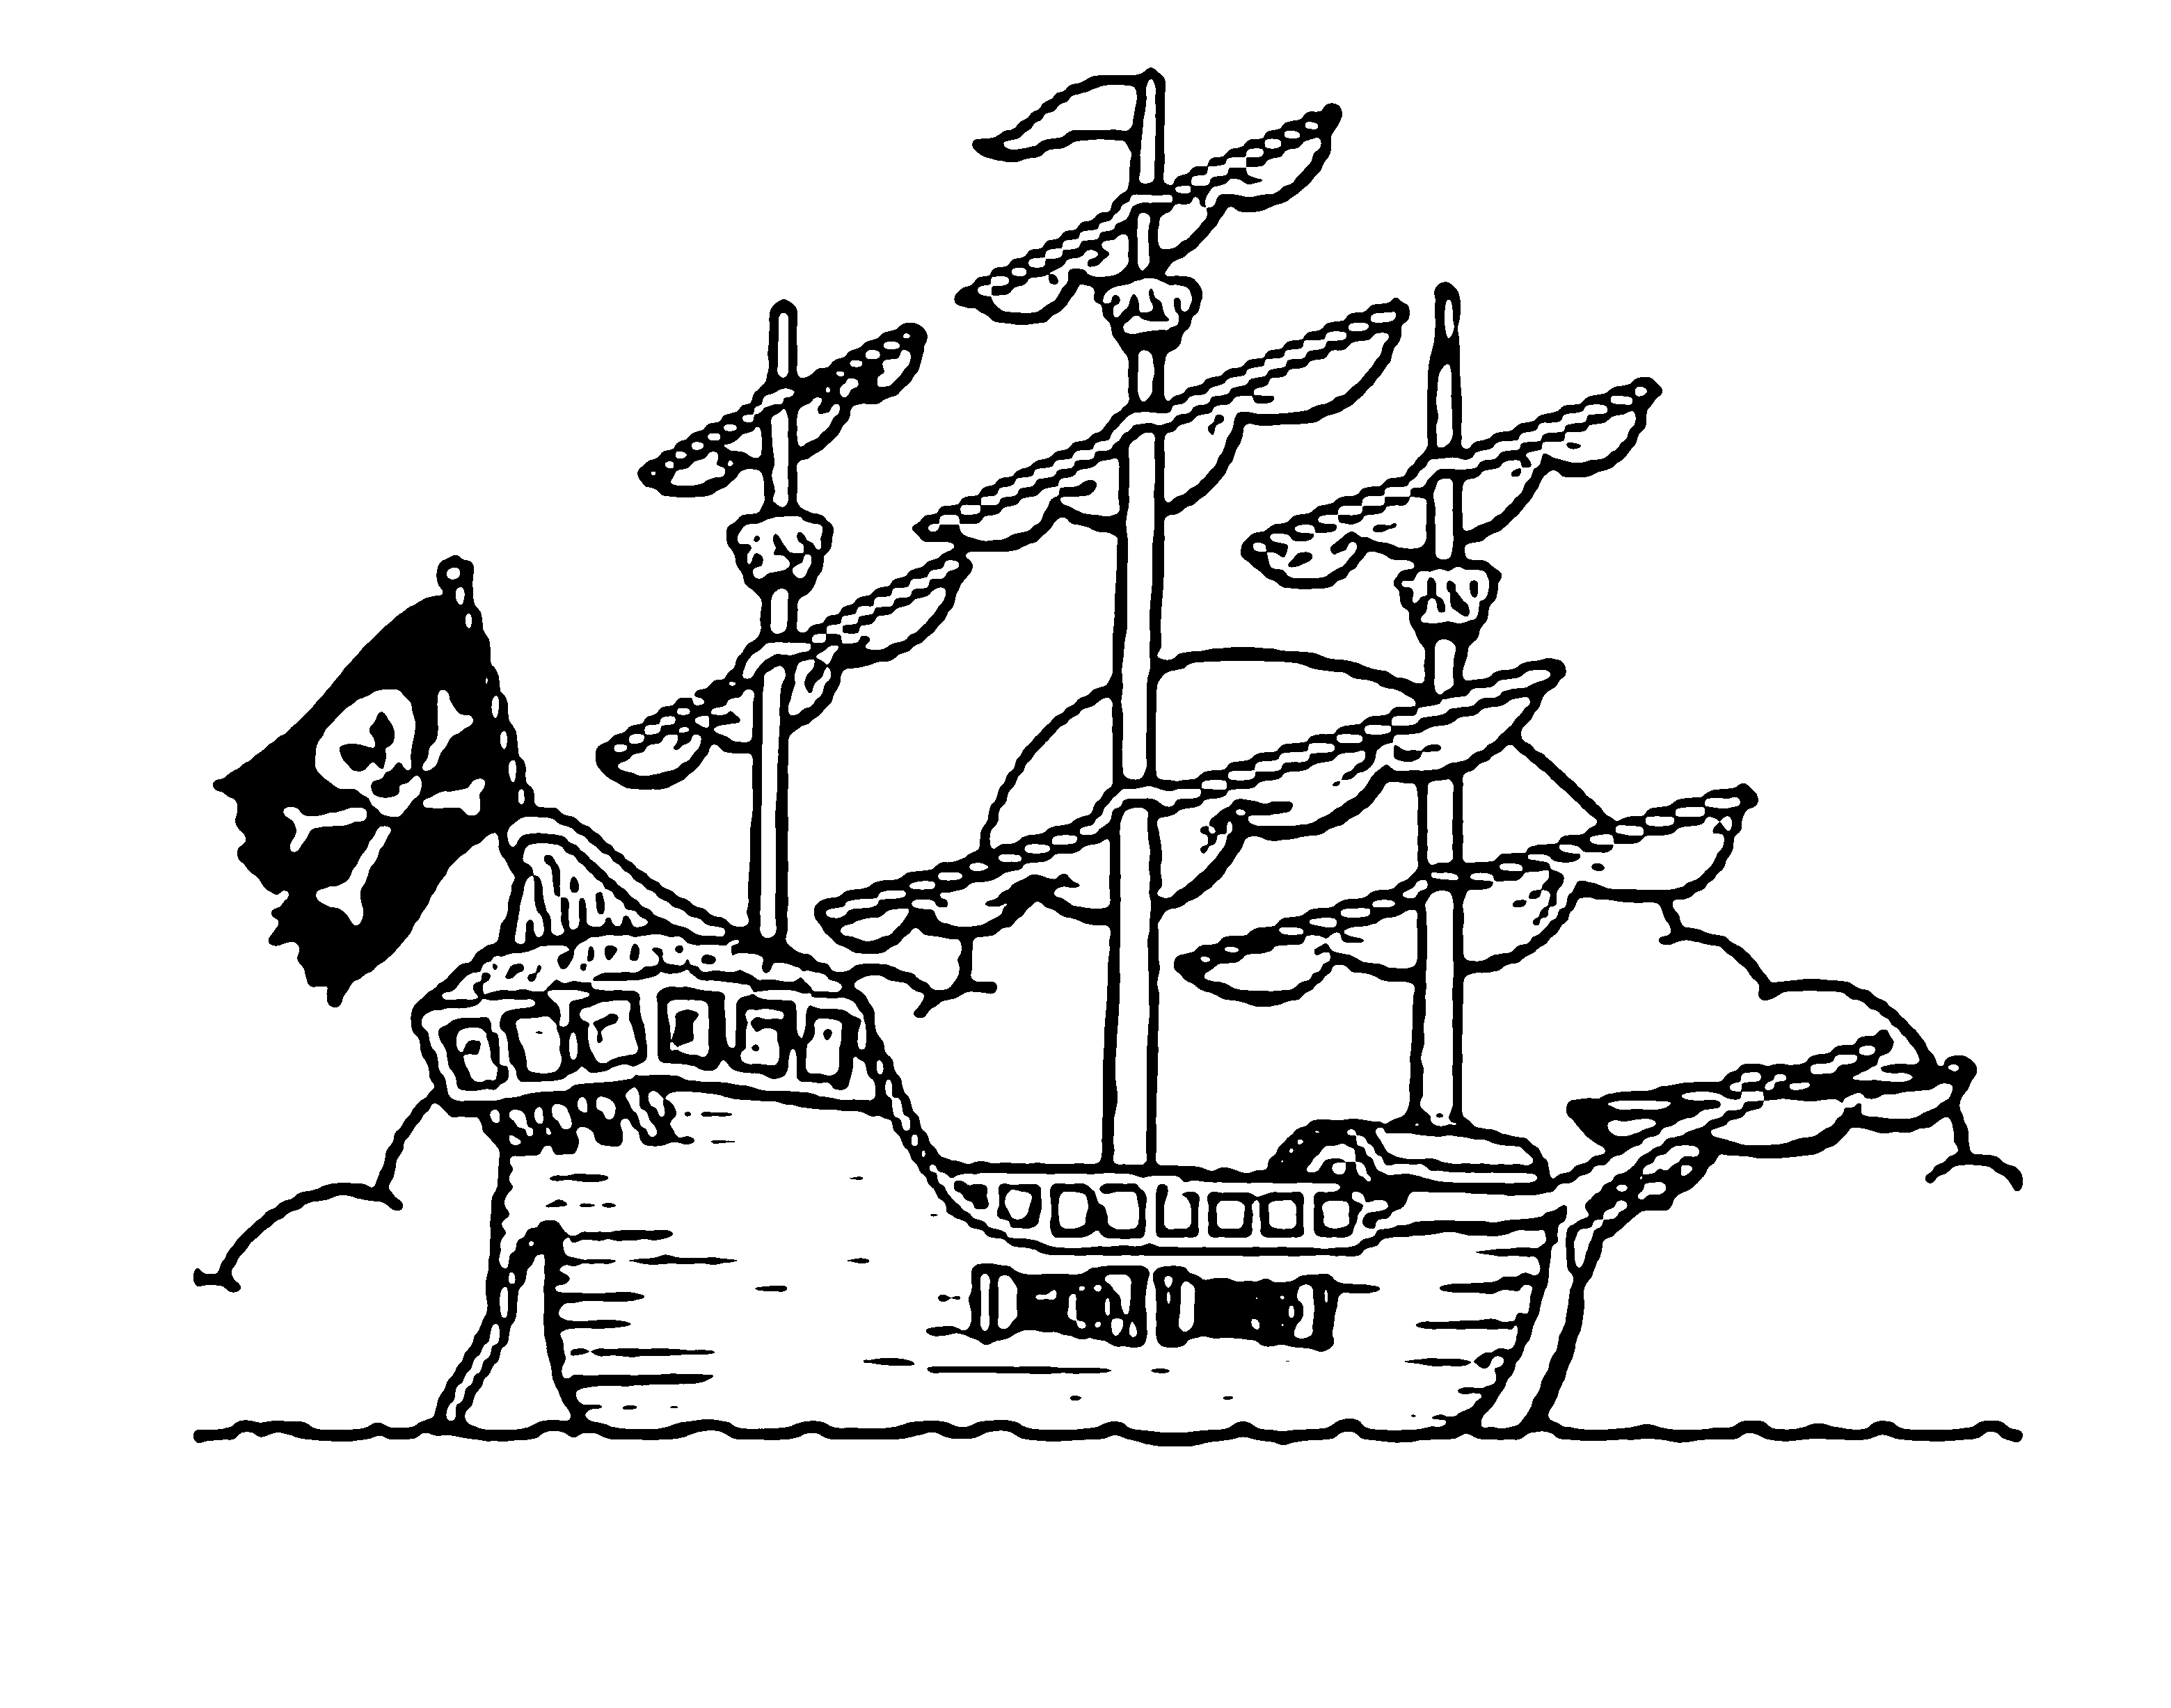 Jake And The Neverland Pirates Treasure Map Coloring Page ...